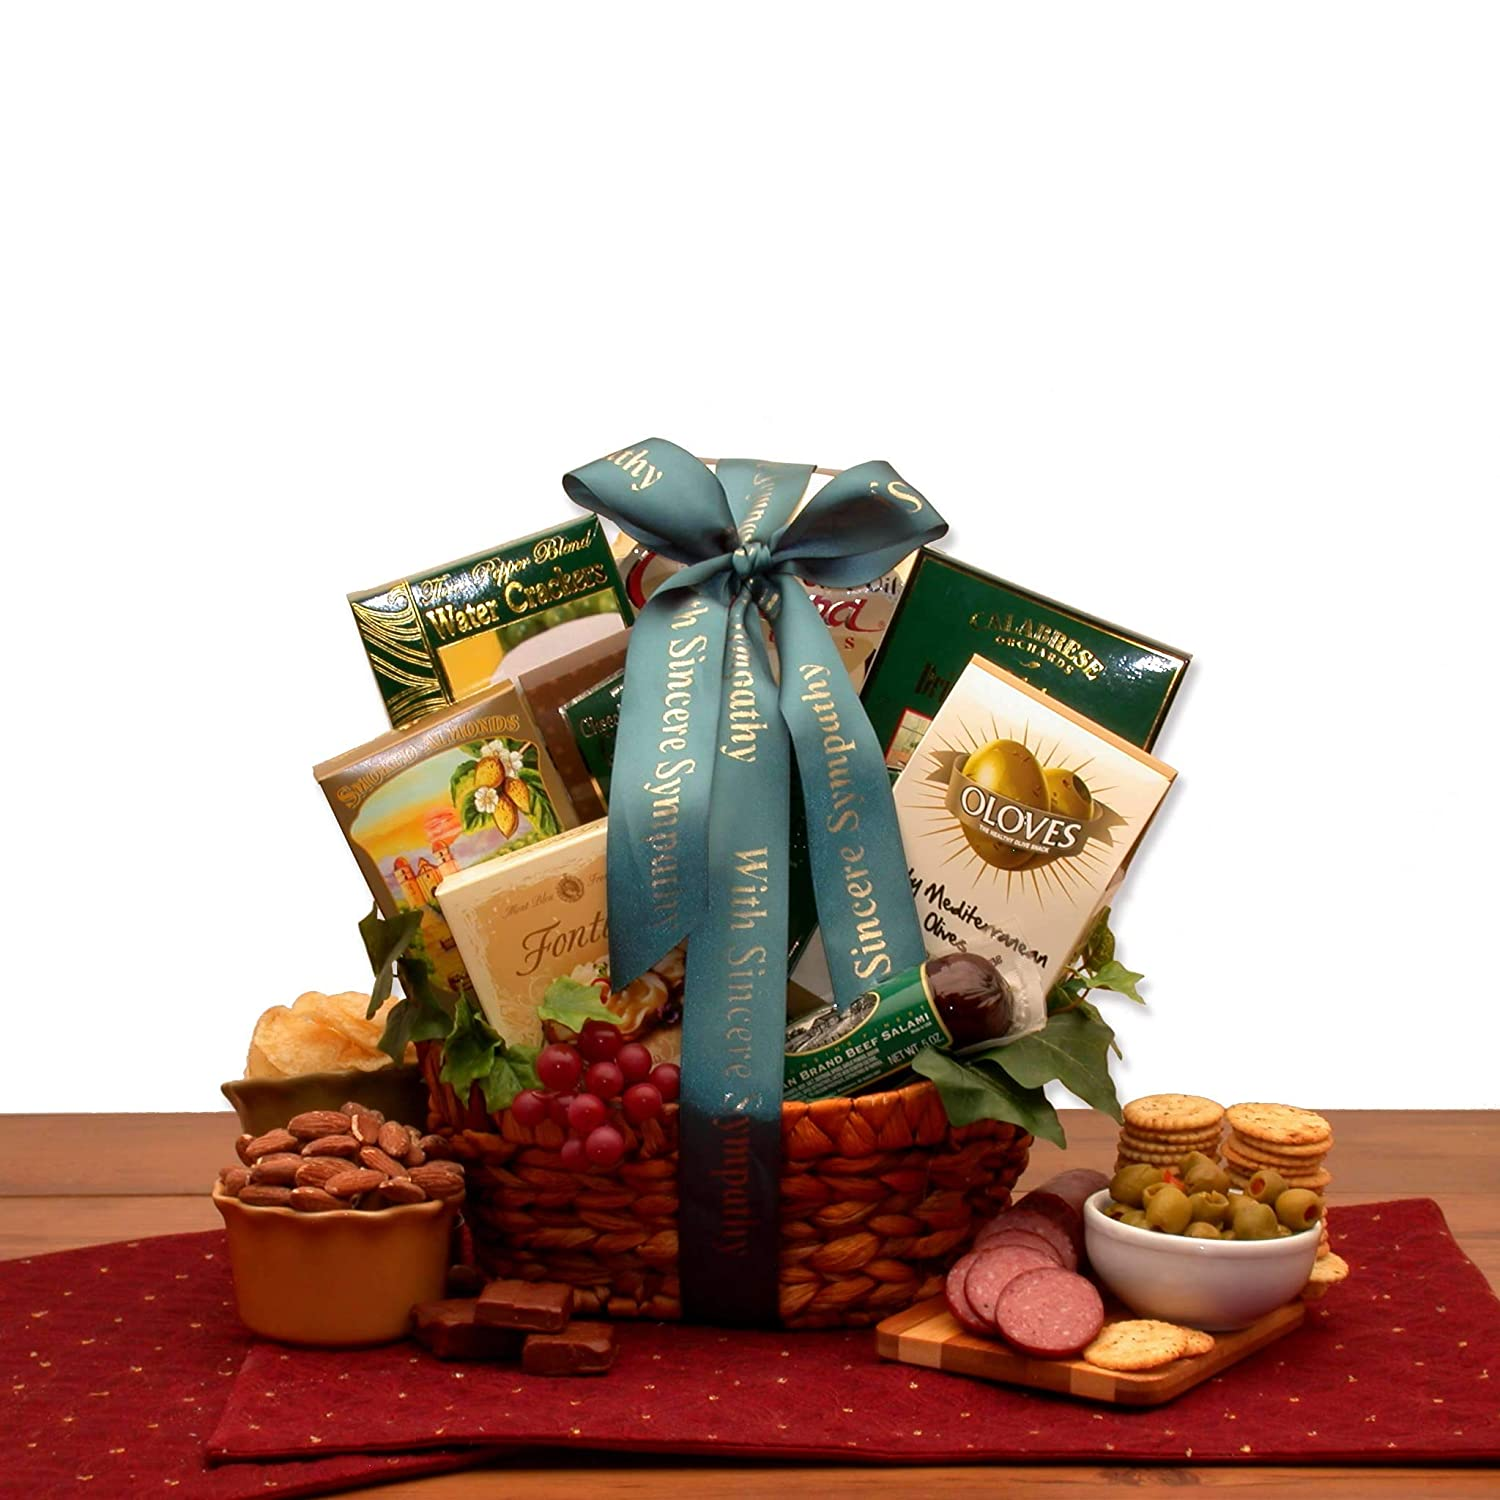 Free 1-3 Day Delivery - In Loving Memory Sympathy Gift Baskets